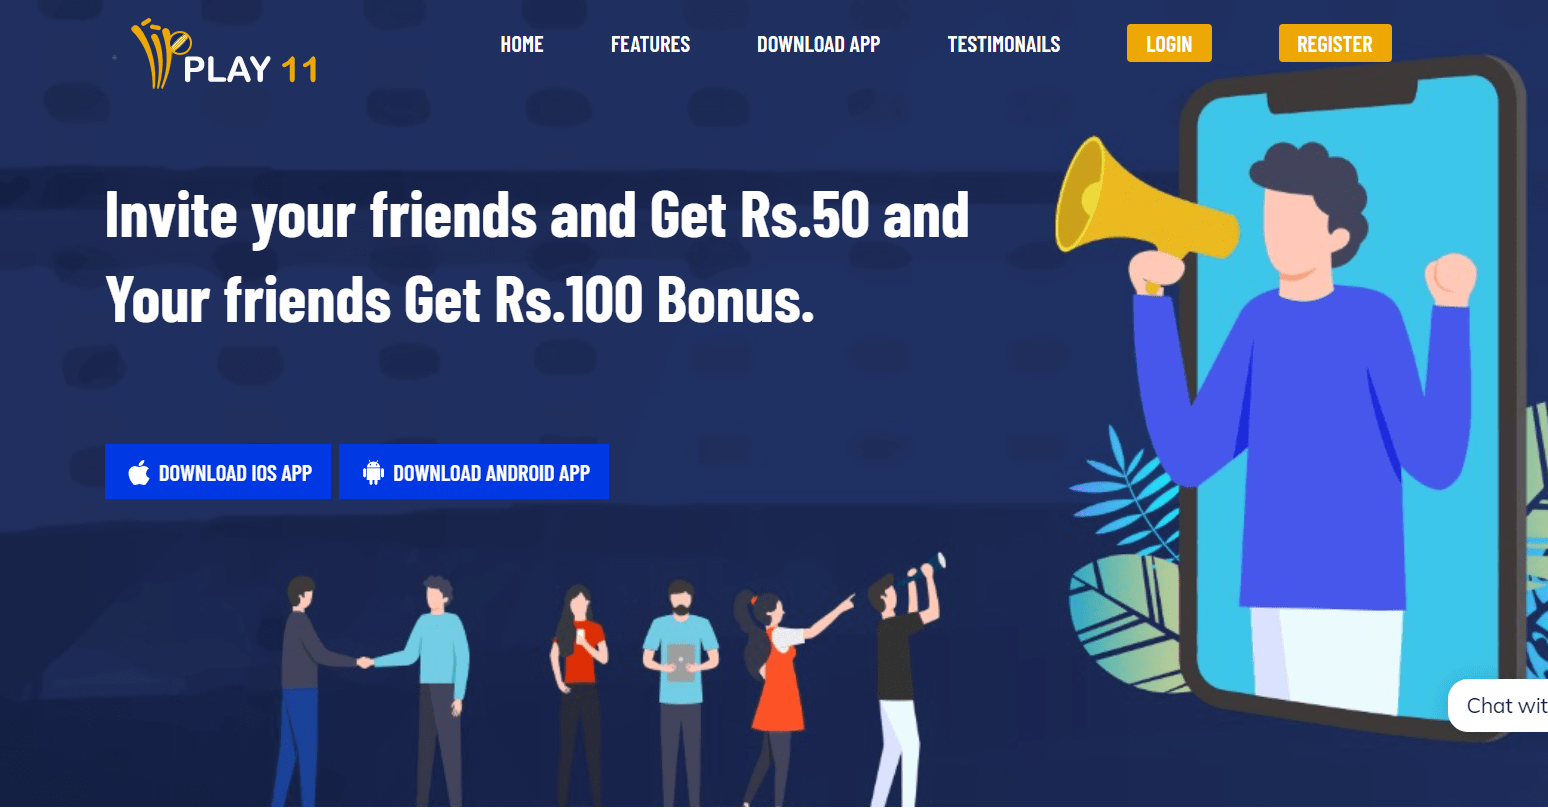 Play11 Referral Code